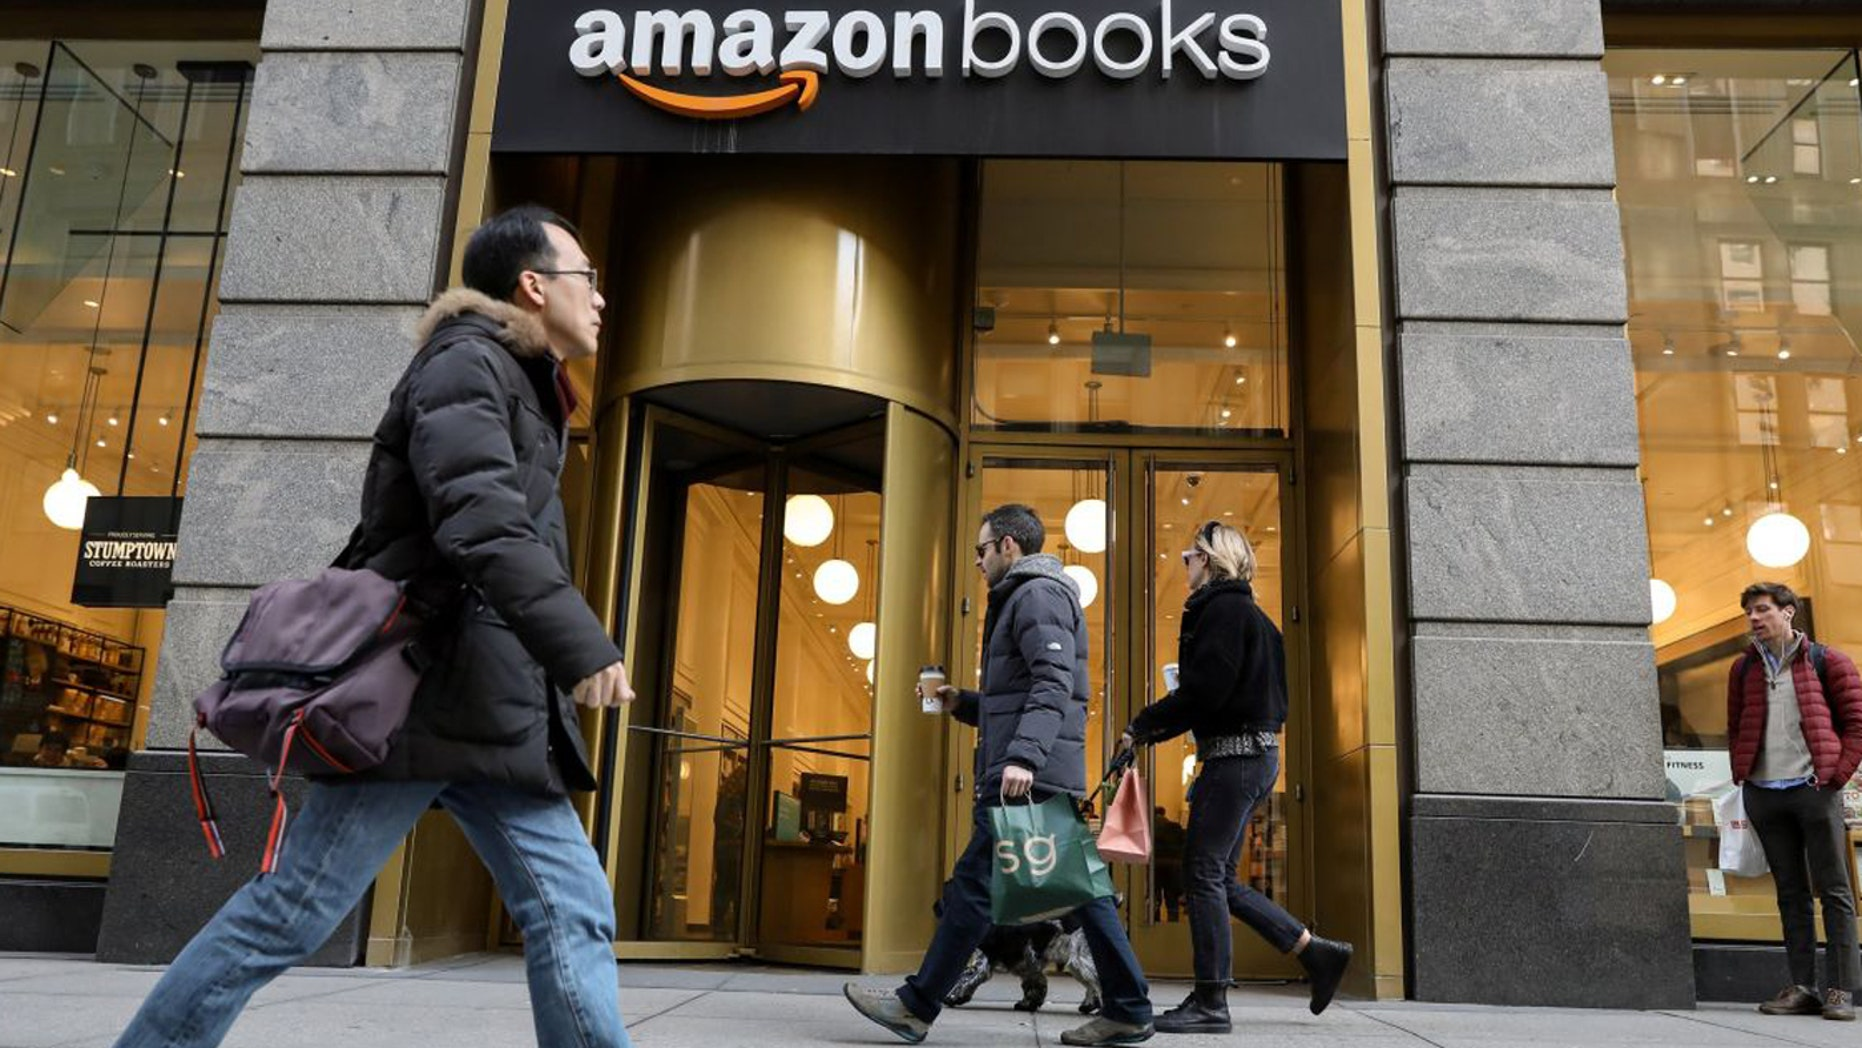 Amazon is branching out into a range of bricks-and-mortar spaces. (Reuters)